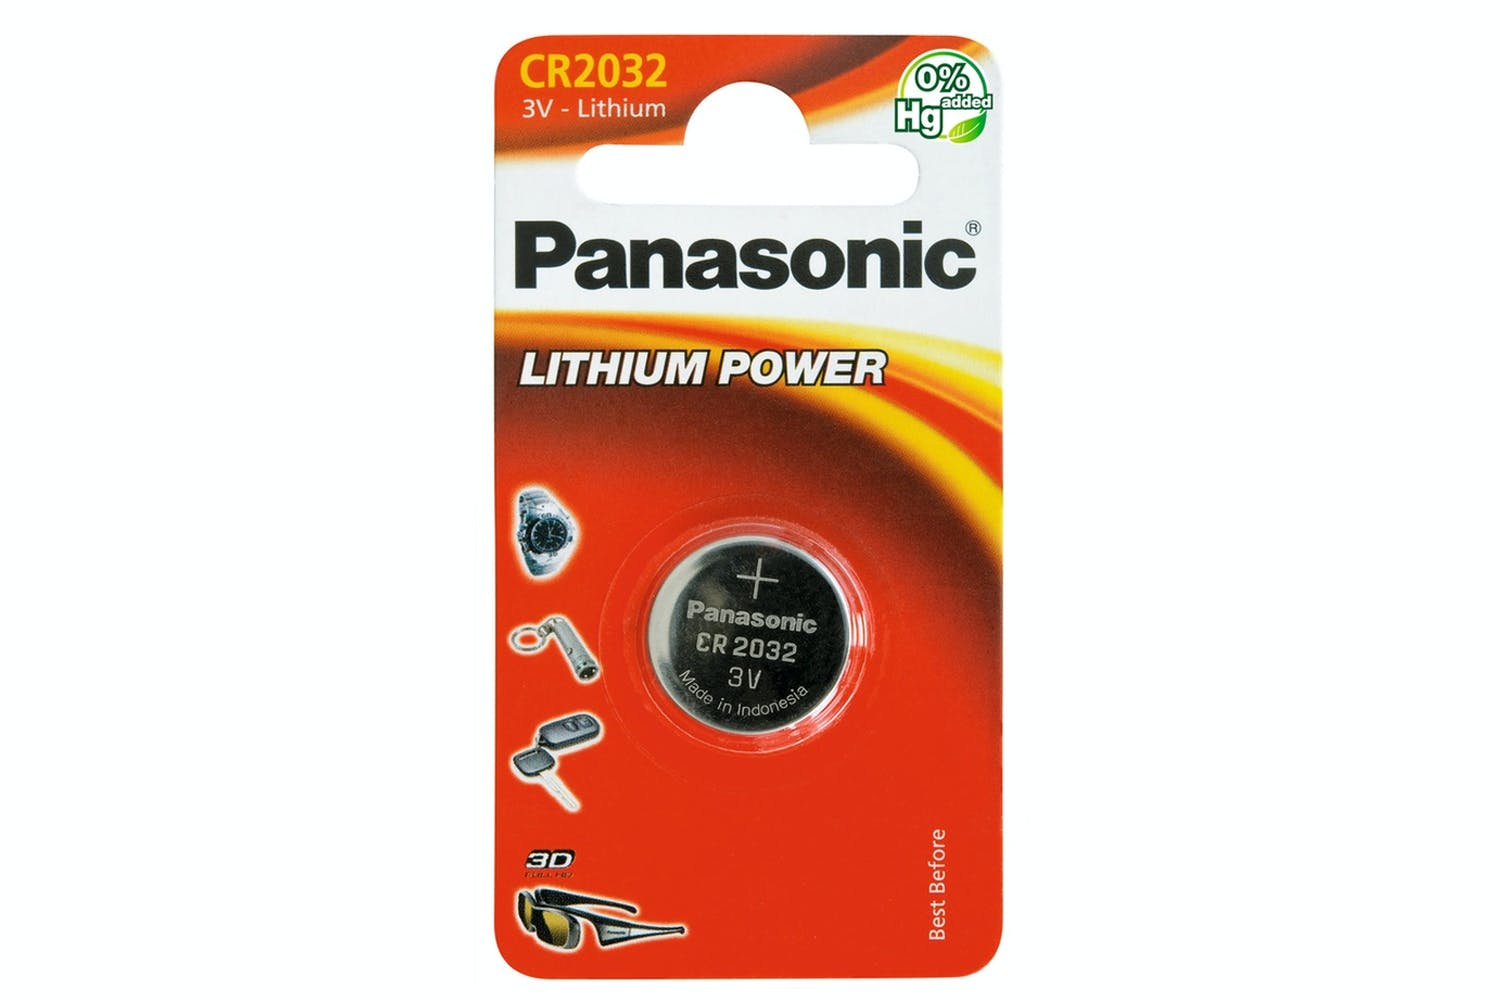 panasonic coin cell battery cr2032 ireland. Black Bedroom Furniture Sets. Home Design Ideas